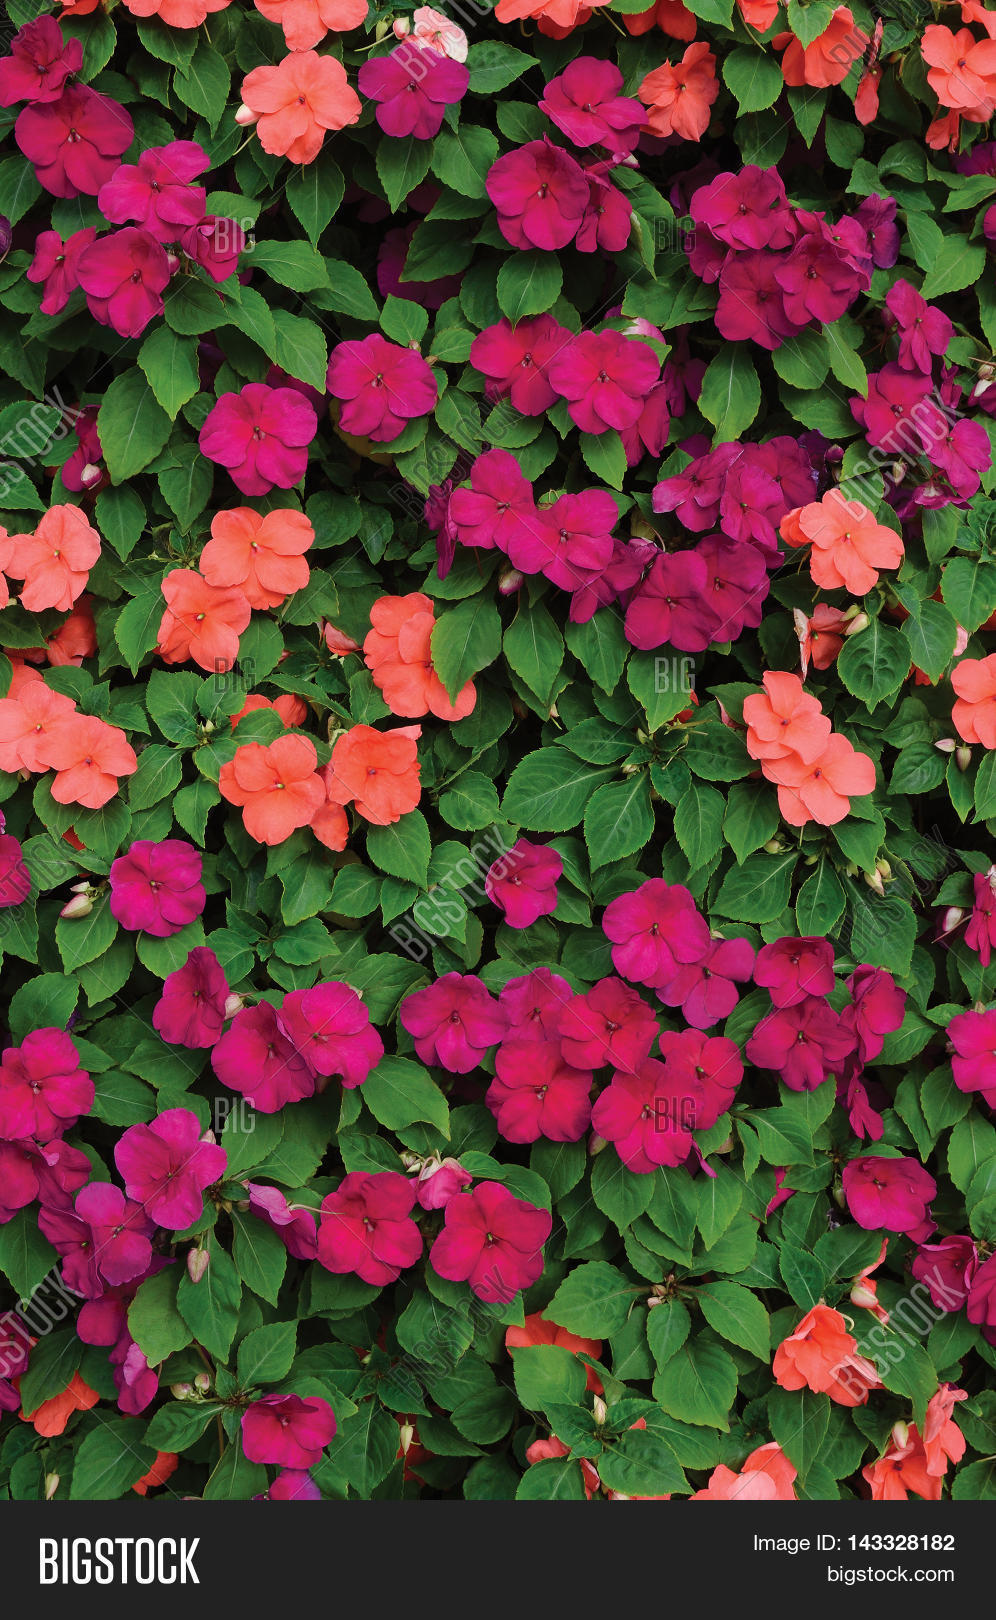 Impatiens Walleriana Image Photo Free Trial Bigstock